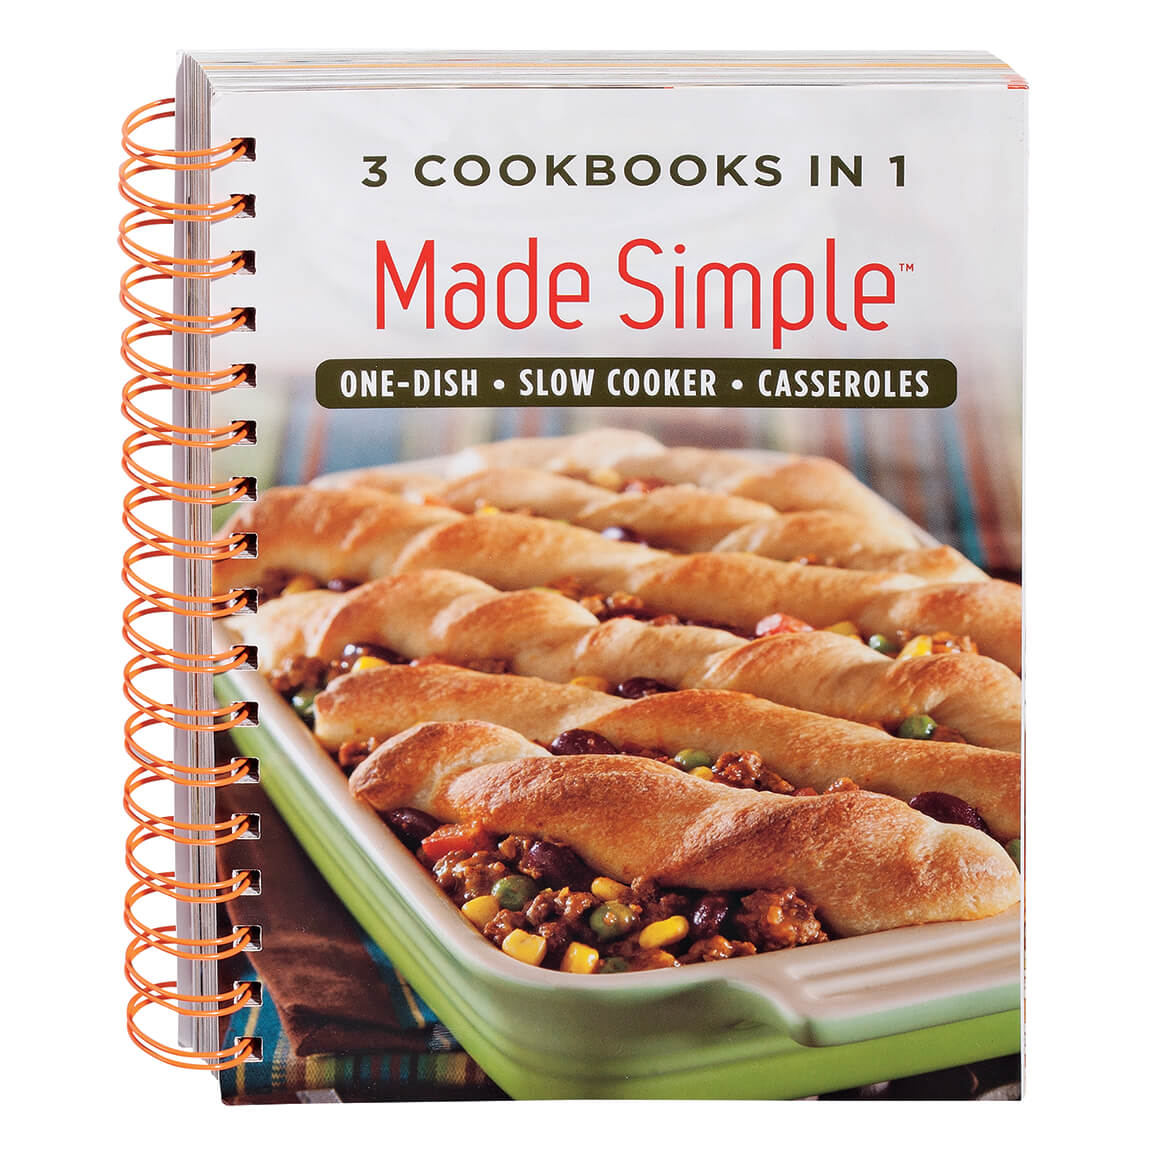 Made Simple 3 Cookbooks in 1-366197